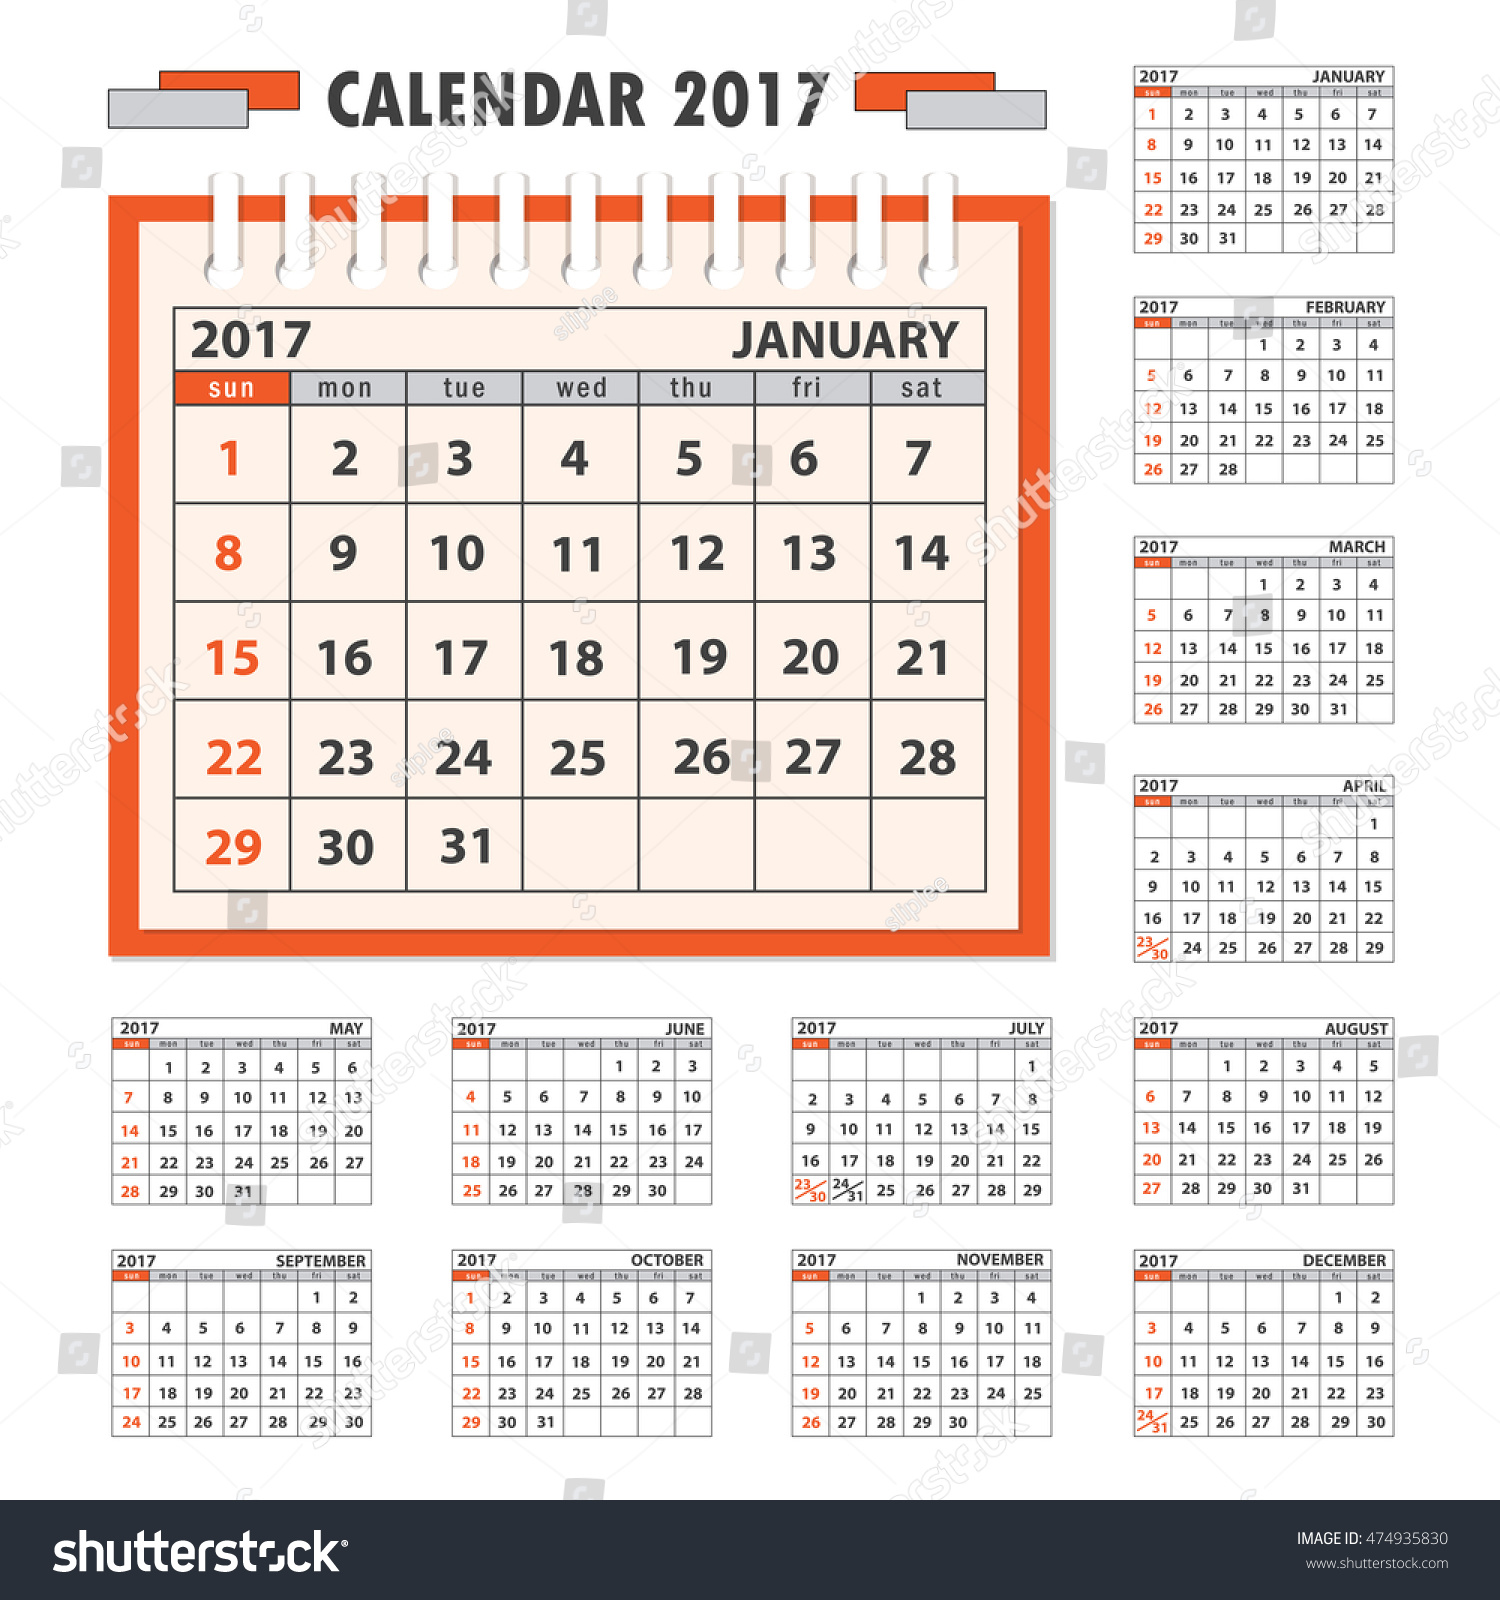 Corporate Calendar 2017 : Business calendar desk on year stock vector